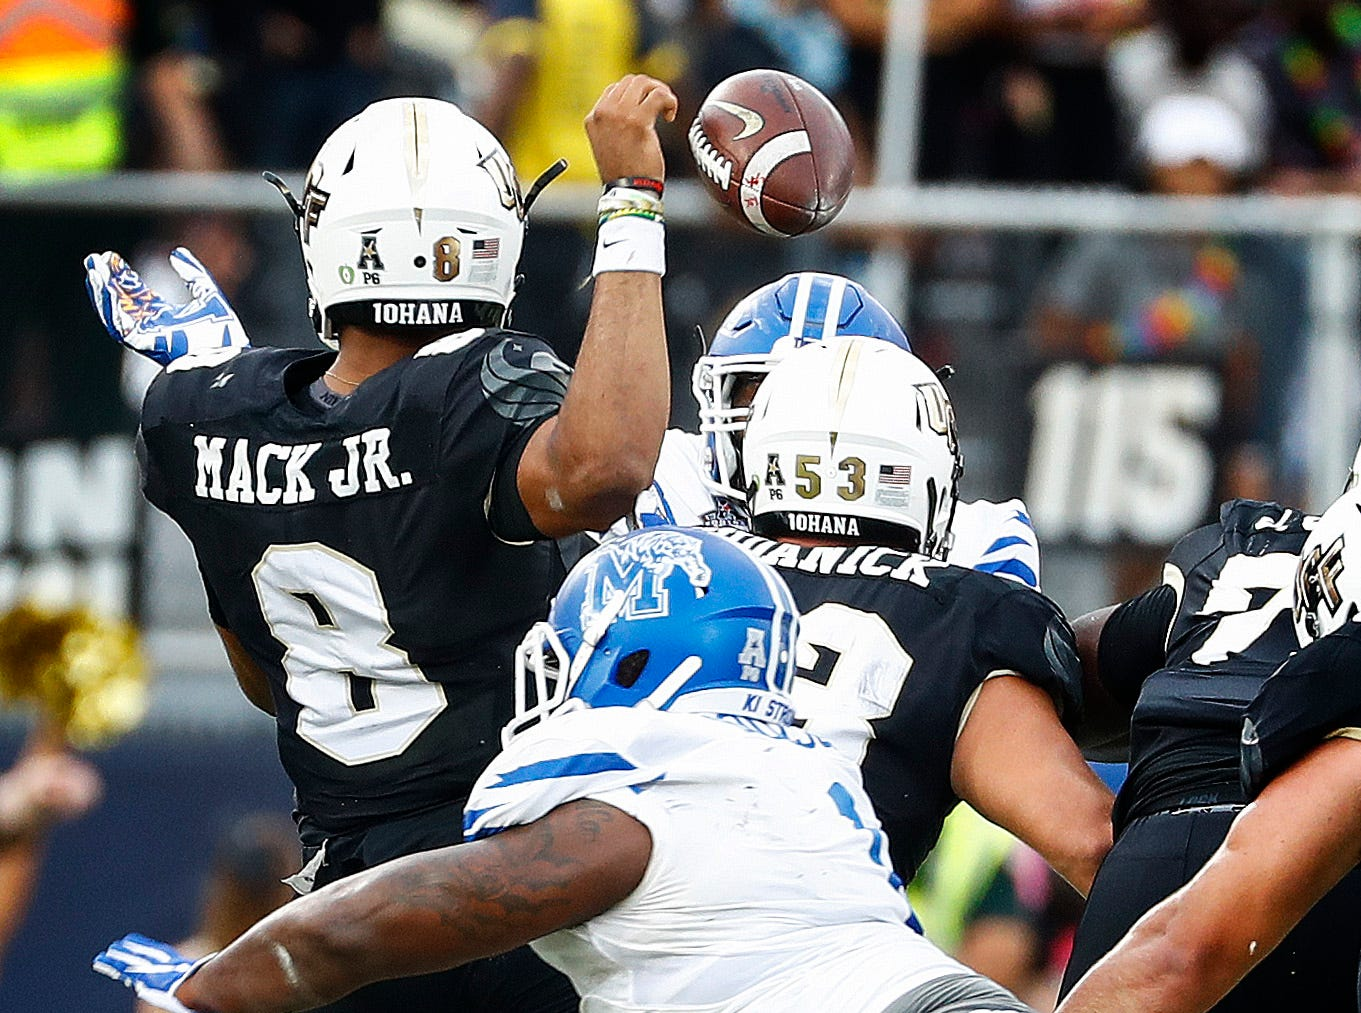 Memphis defender O'Bryan Goodson (bottom) hits UCF quarterback Darriel Mack Jr. (top) causing a fumble, that the Tigers recovered during action at the AAC Championship Football game Saturday, December 1, 2018 in Orlando.